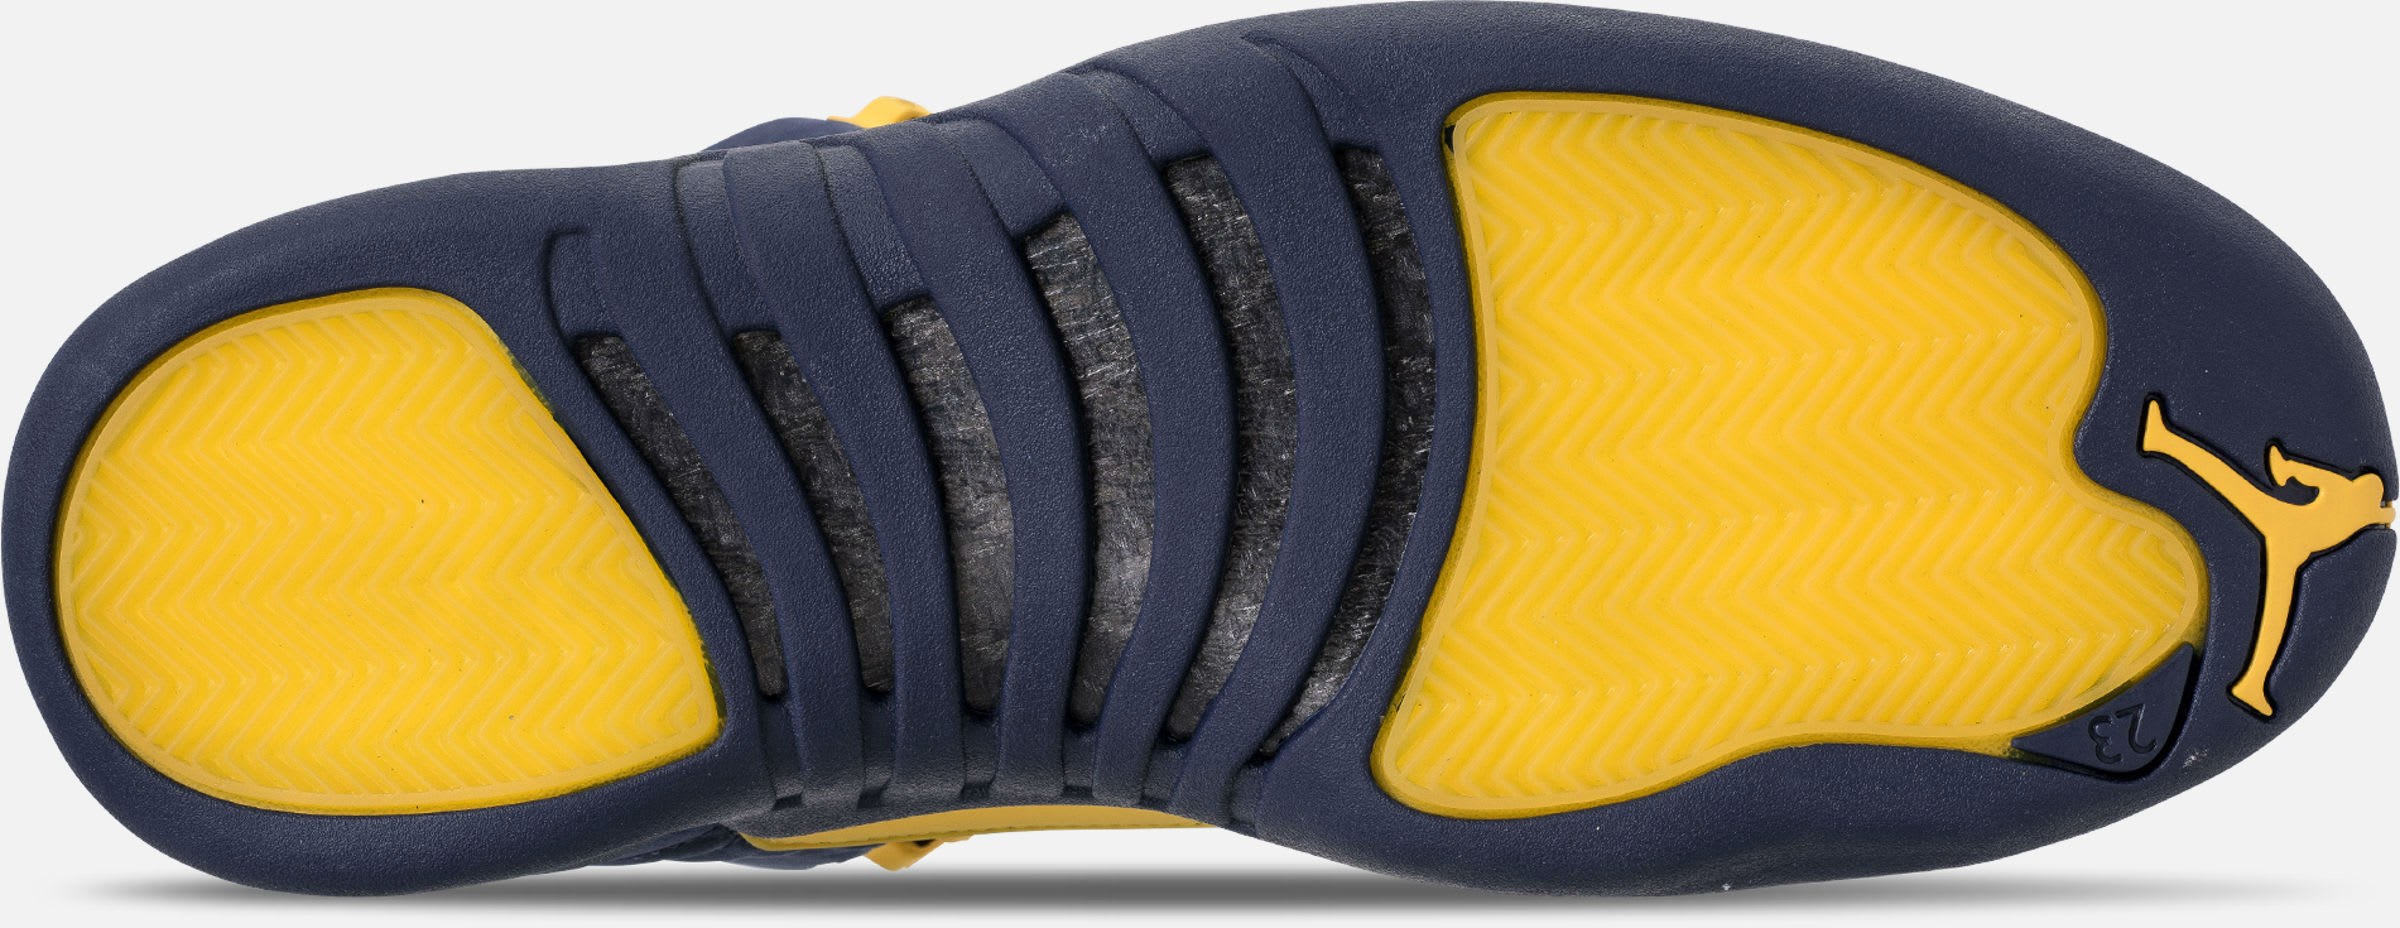 Air Jordan 12 XII Michigan Release Date BQ3180-407 Sole